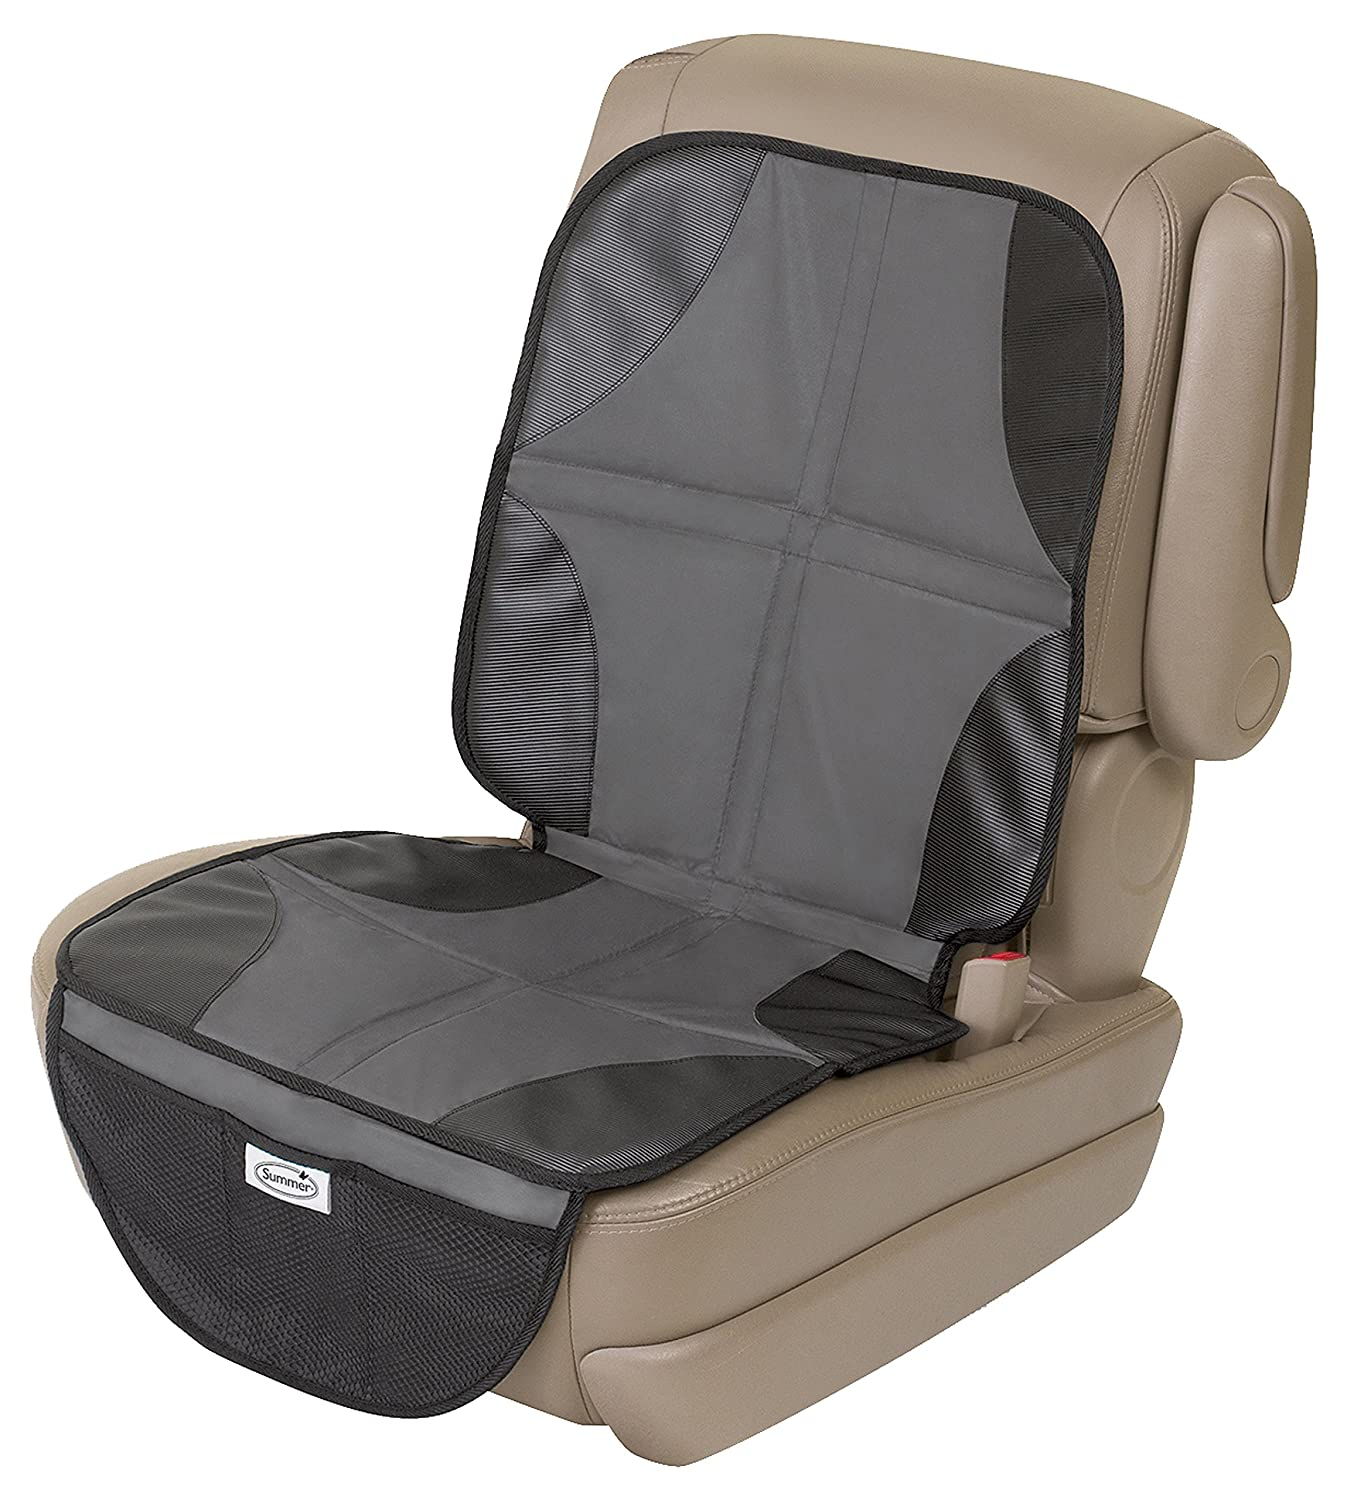 Summer Infant 77724 DuoMat 2 in 1 Car Seat Protector 77724A